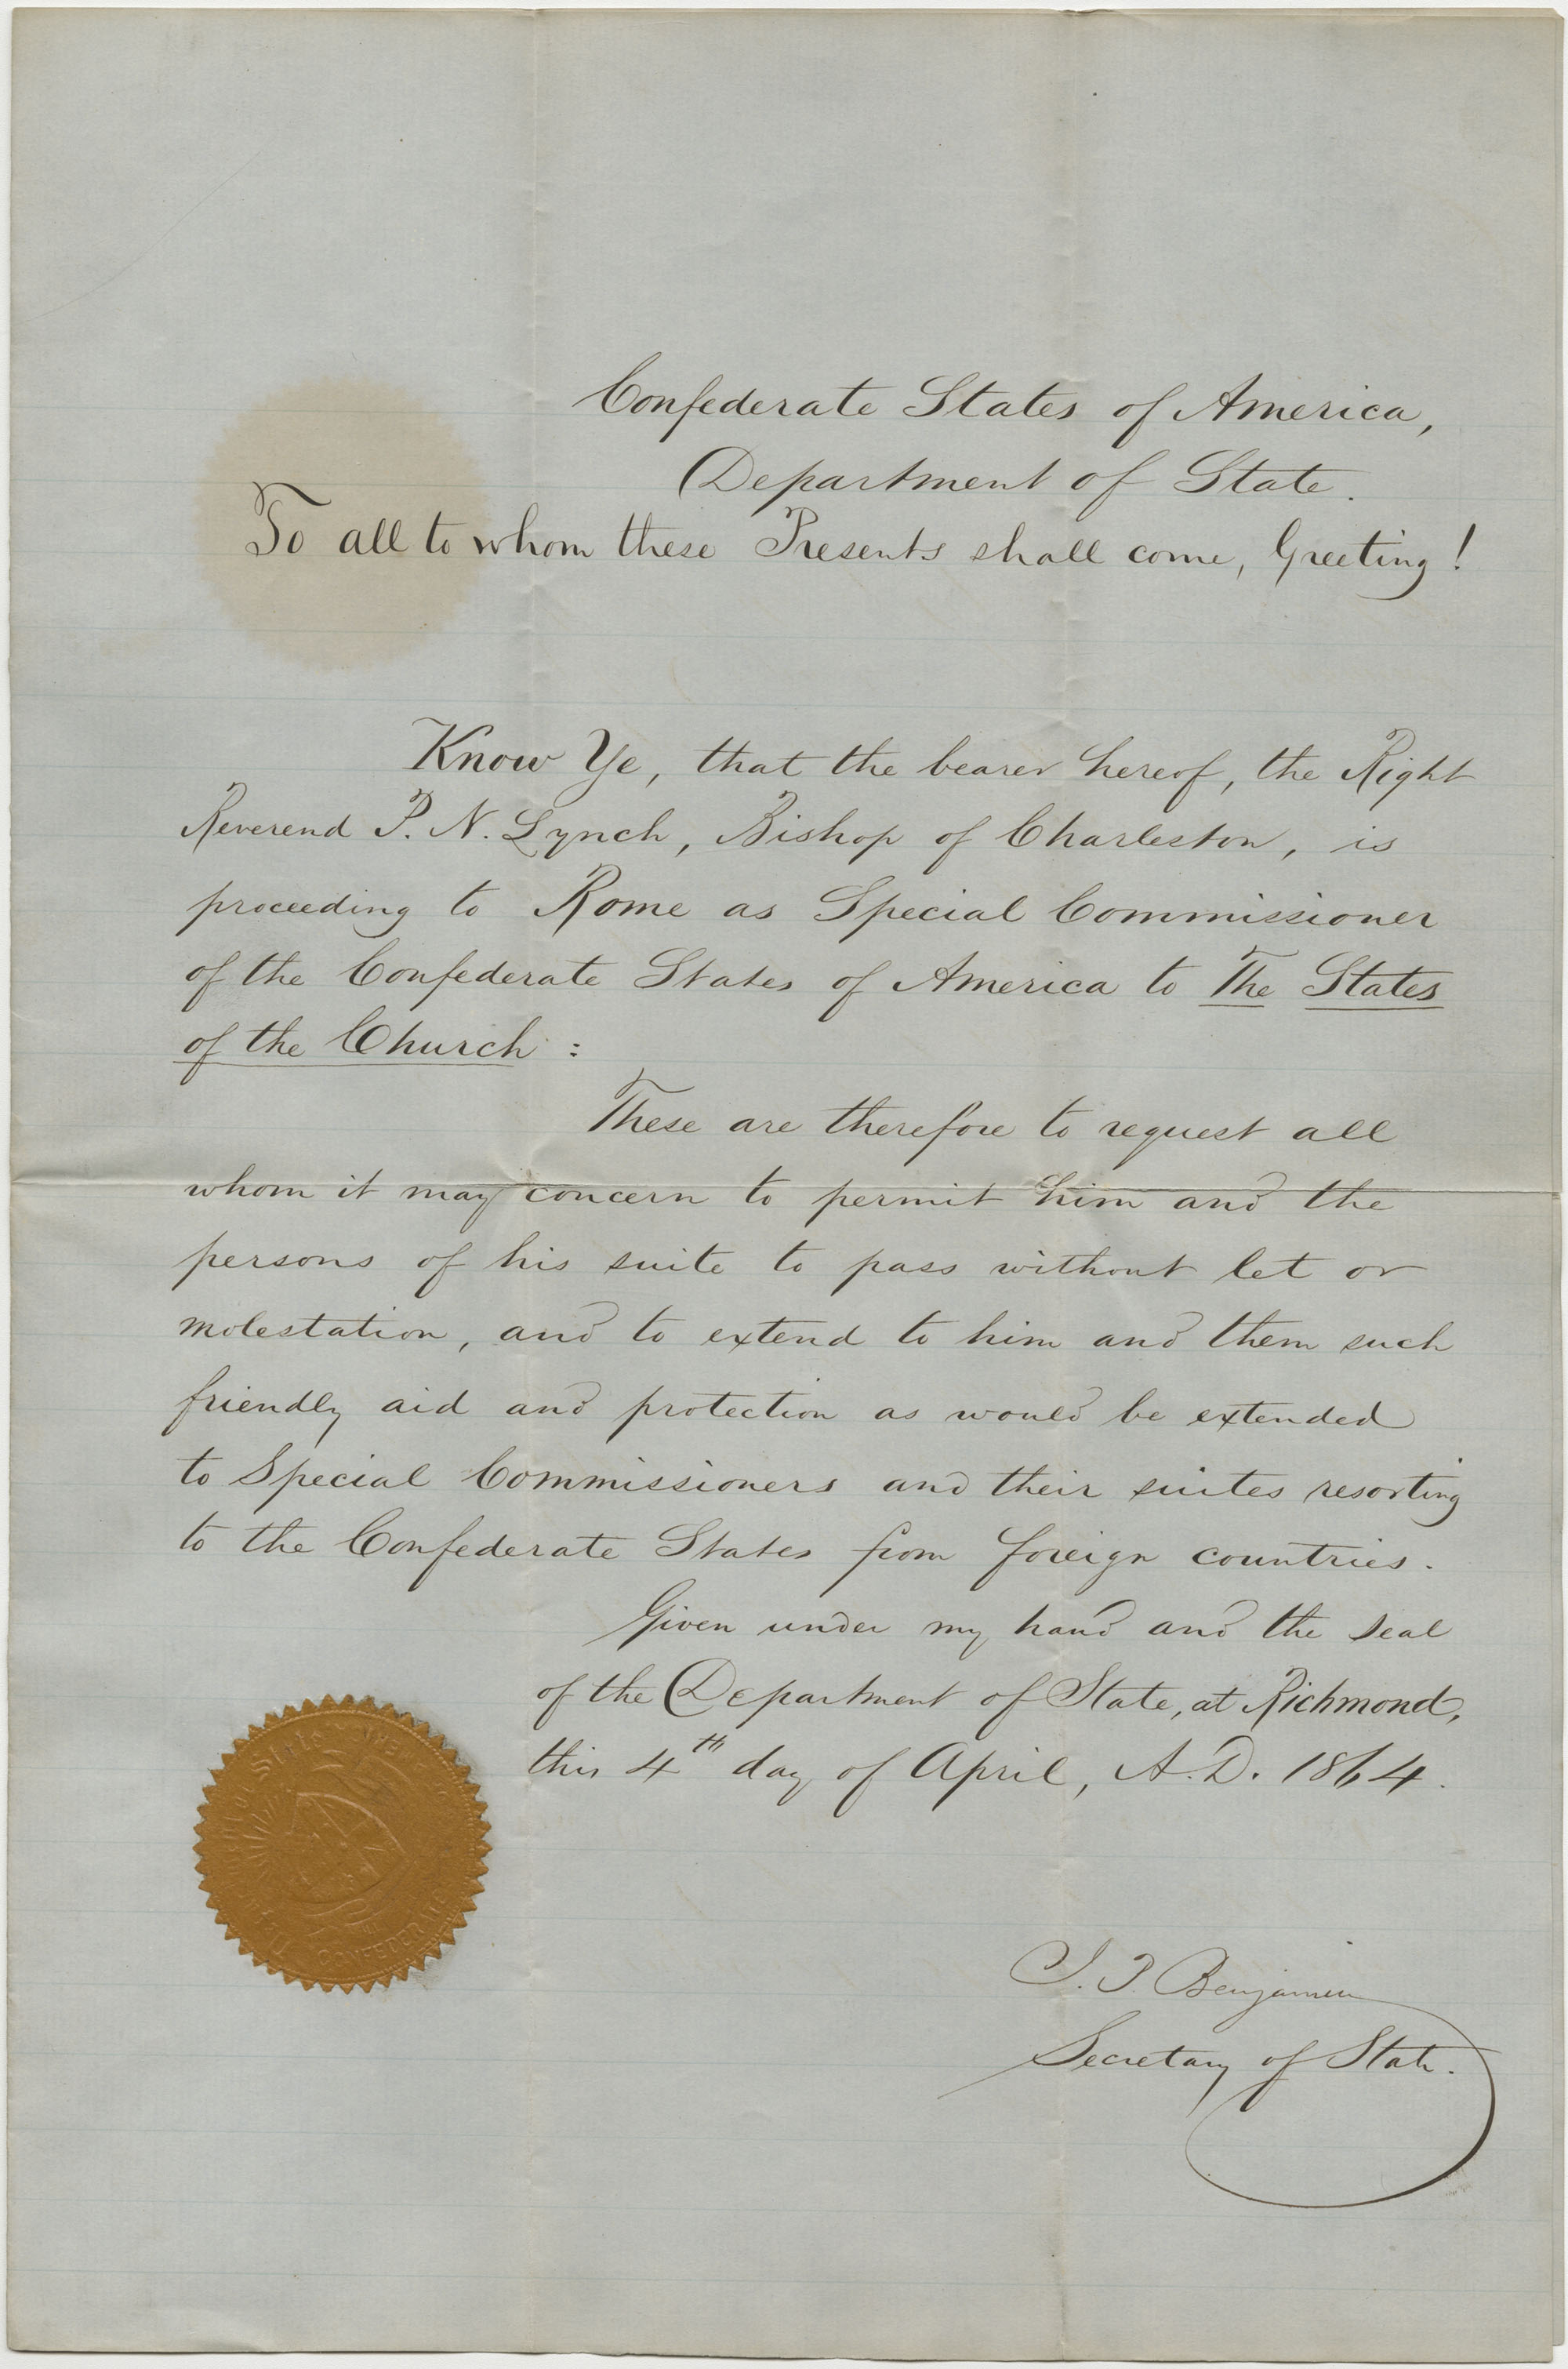 Letter of introduction from J. P. Benjamin for P. N. Lynch